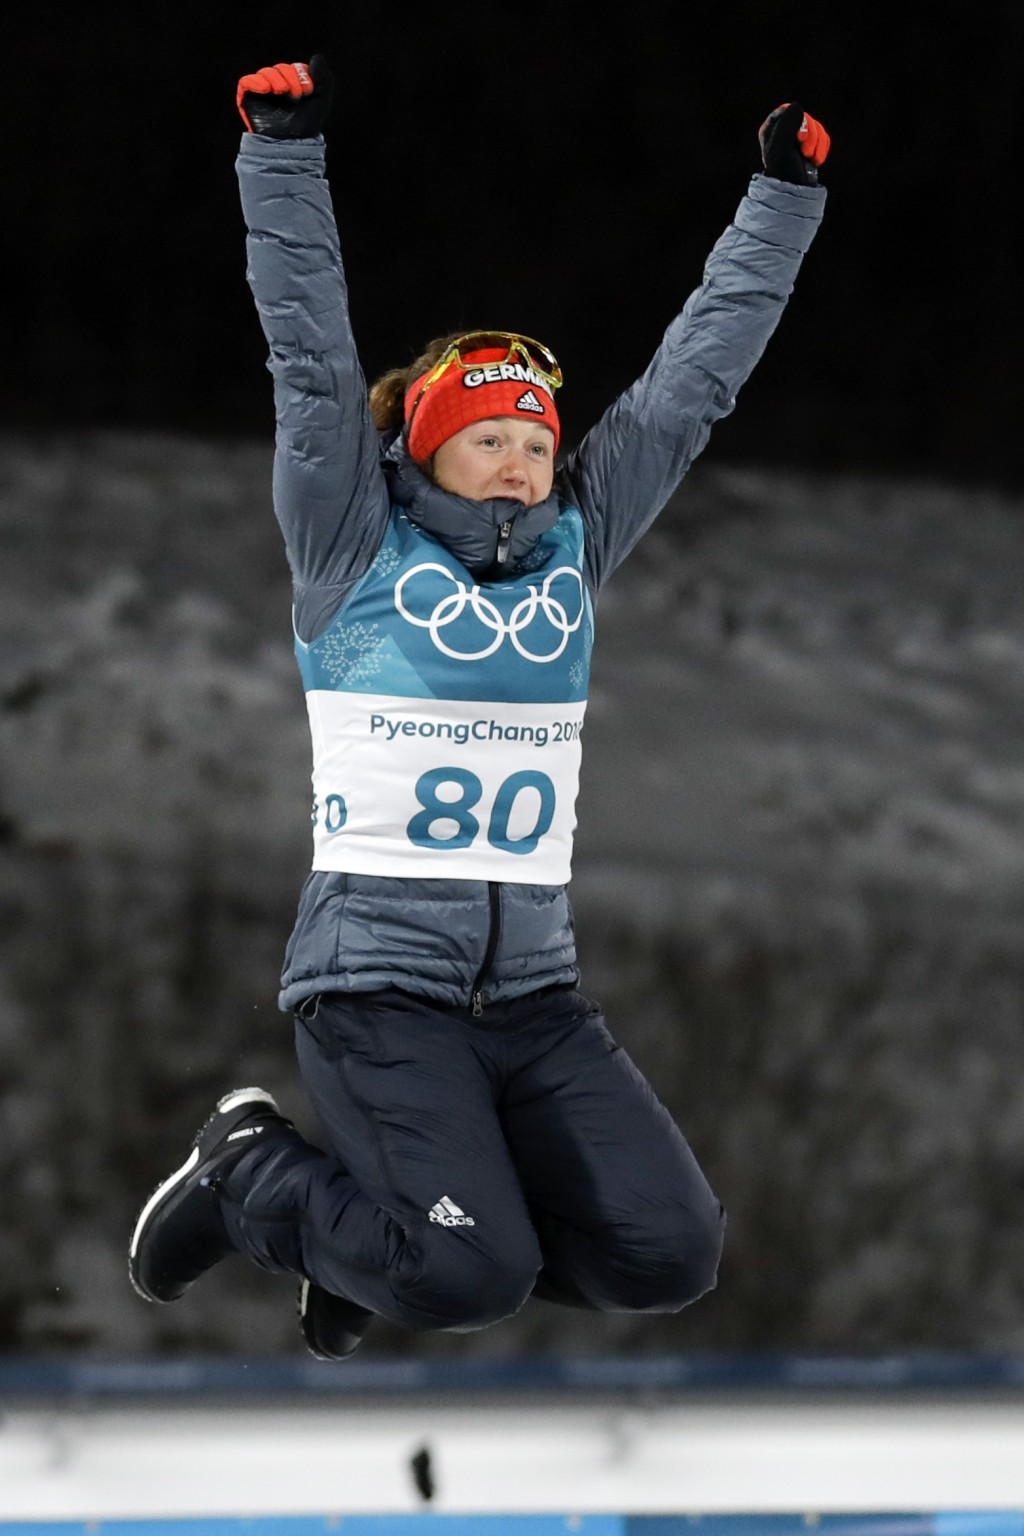 Laura Dahlmeier, of Germany, celebrates her bronze medal during the venue ceremony after the women's 15-kilometer individual biathlon at the 2018 Wint